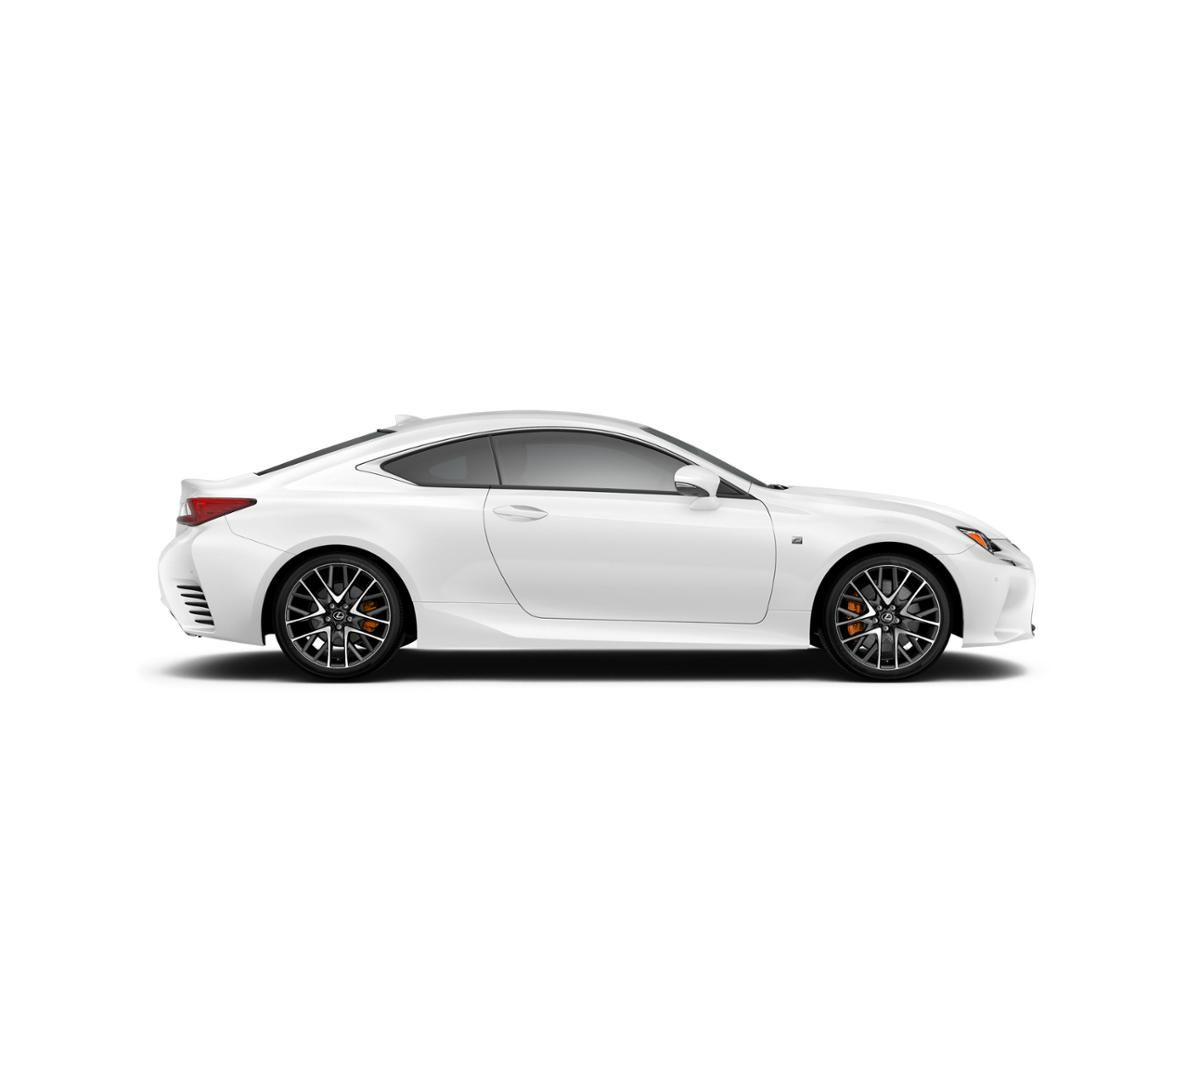 2017 Lexus Rc Exterior: 2017 Lexus RC Turbo For Sale In San Antonio